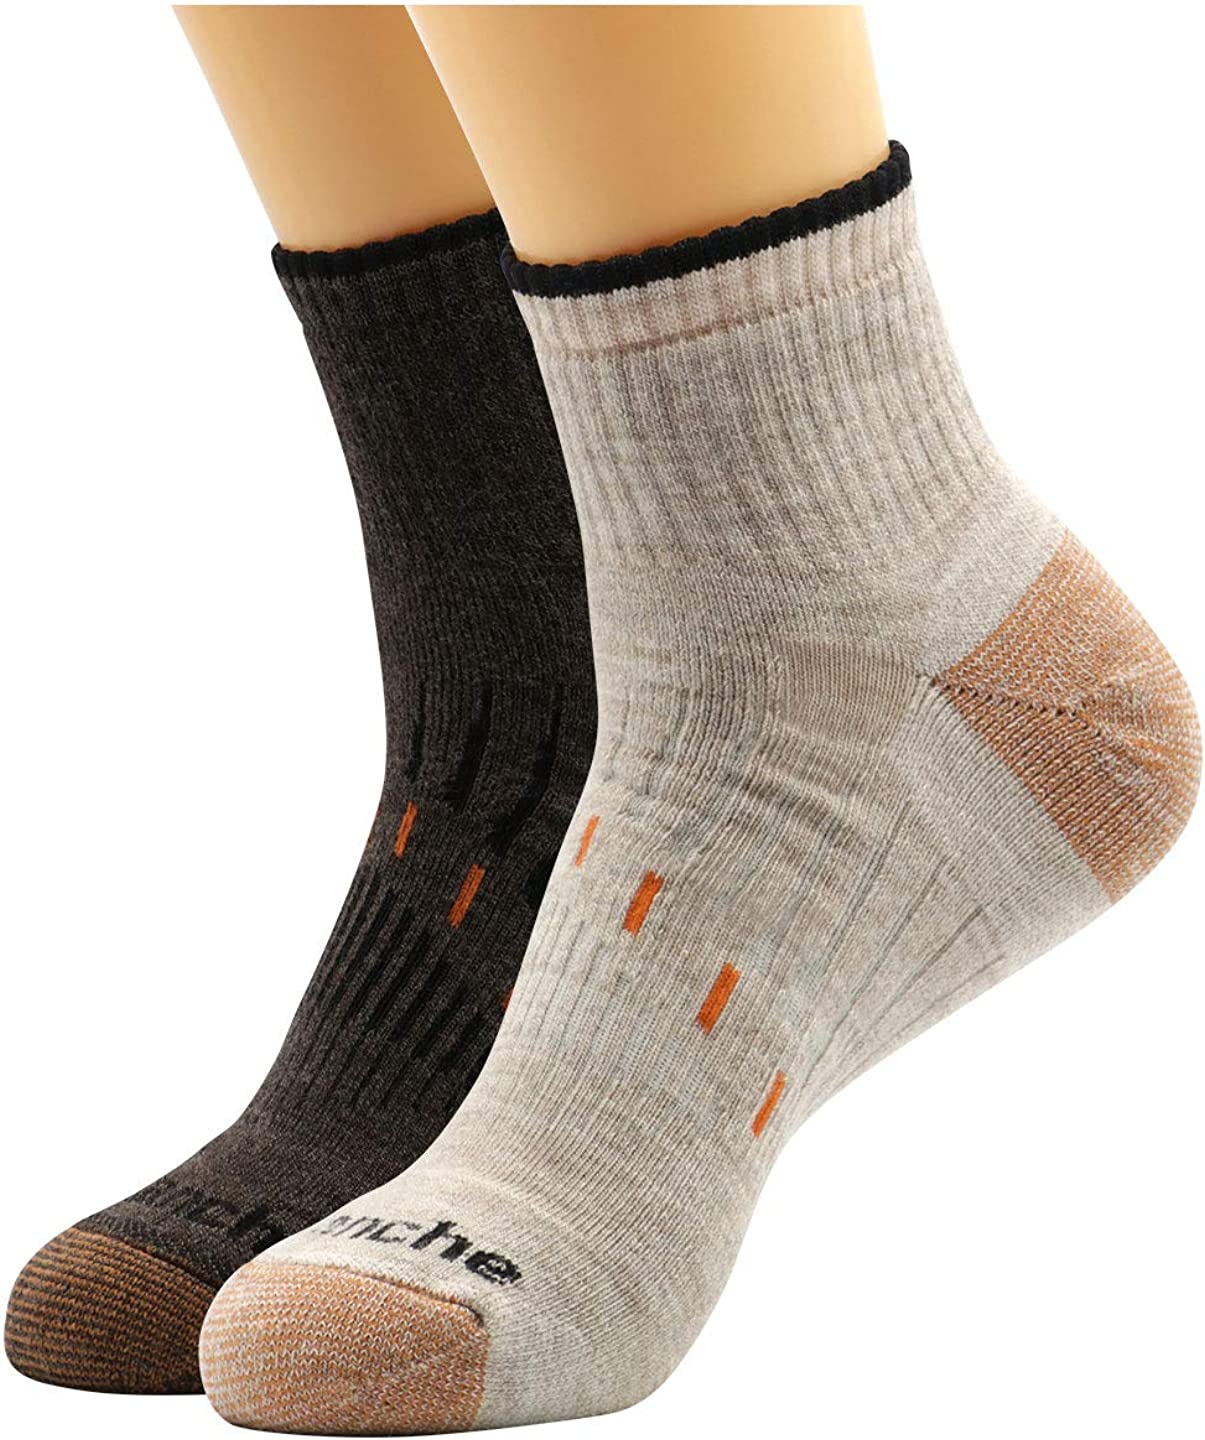 Avalanche Men's Odor Resistant Copper Wool Blend Quarter Socks With Arch Support 2Pack